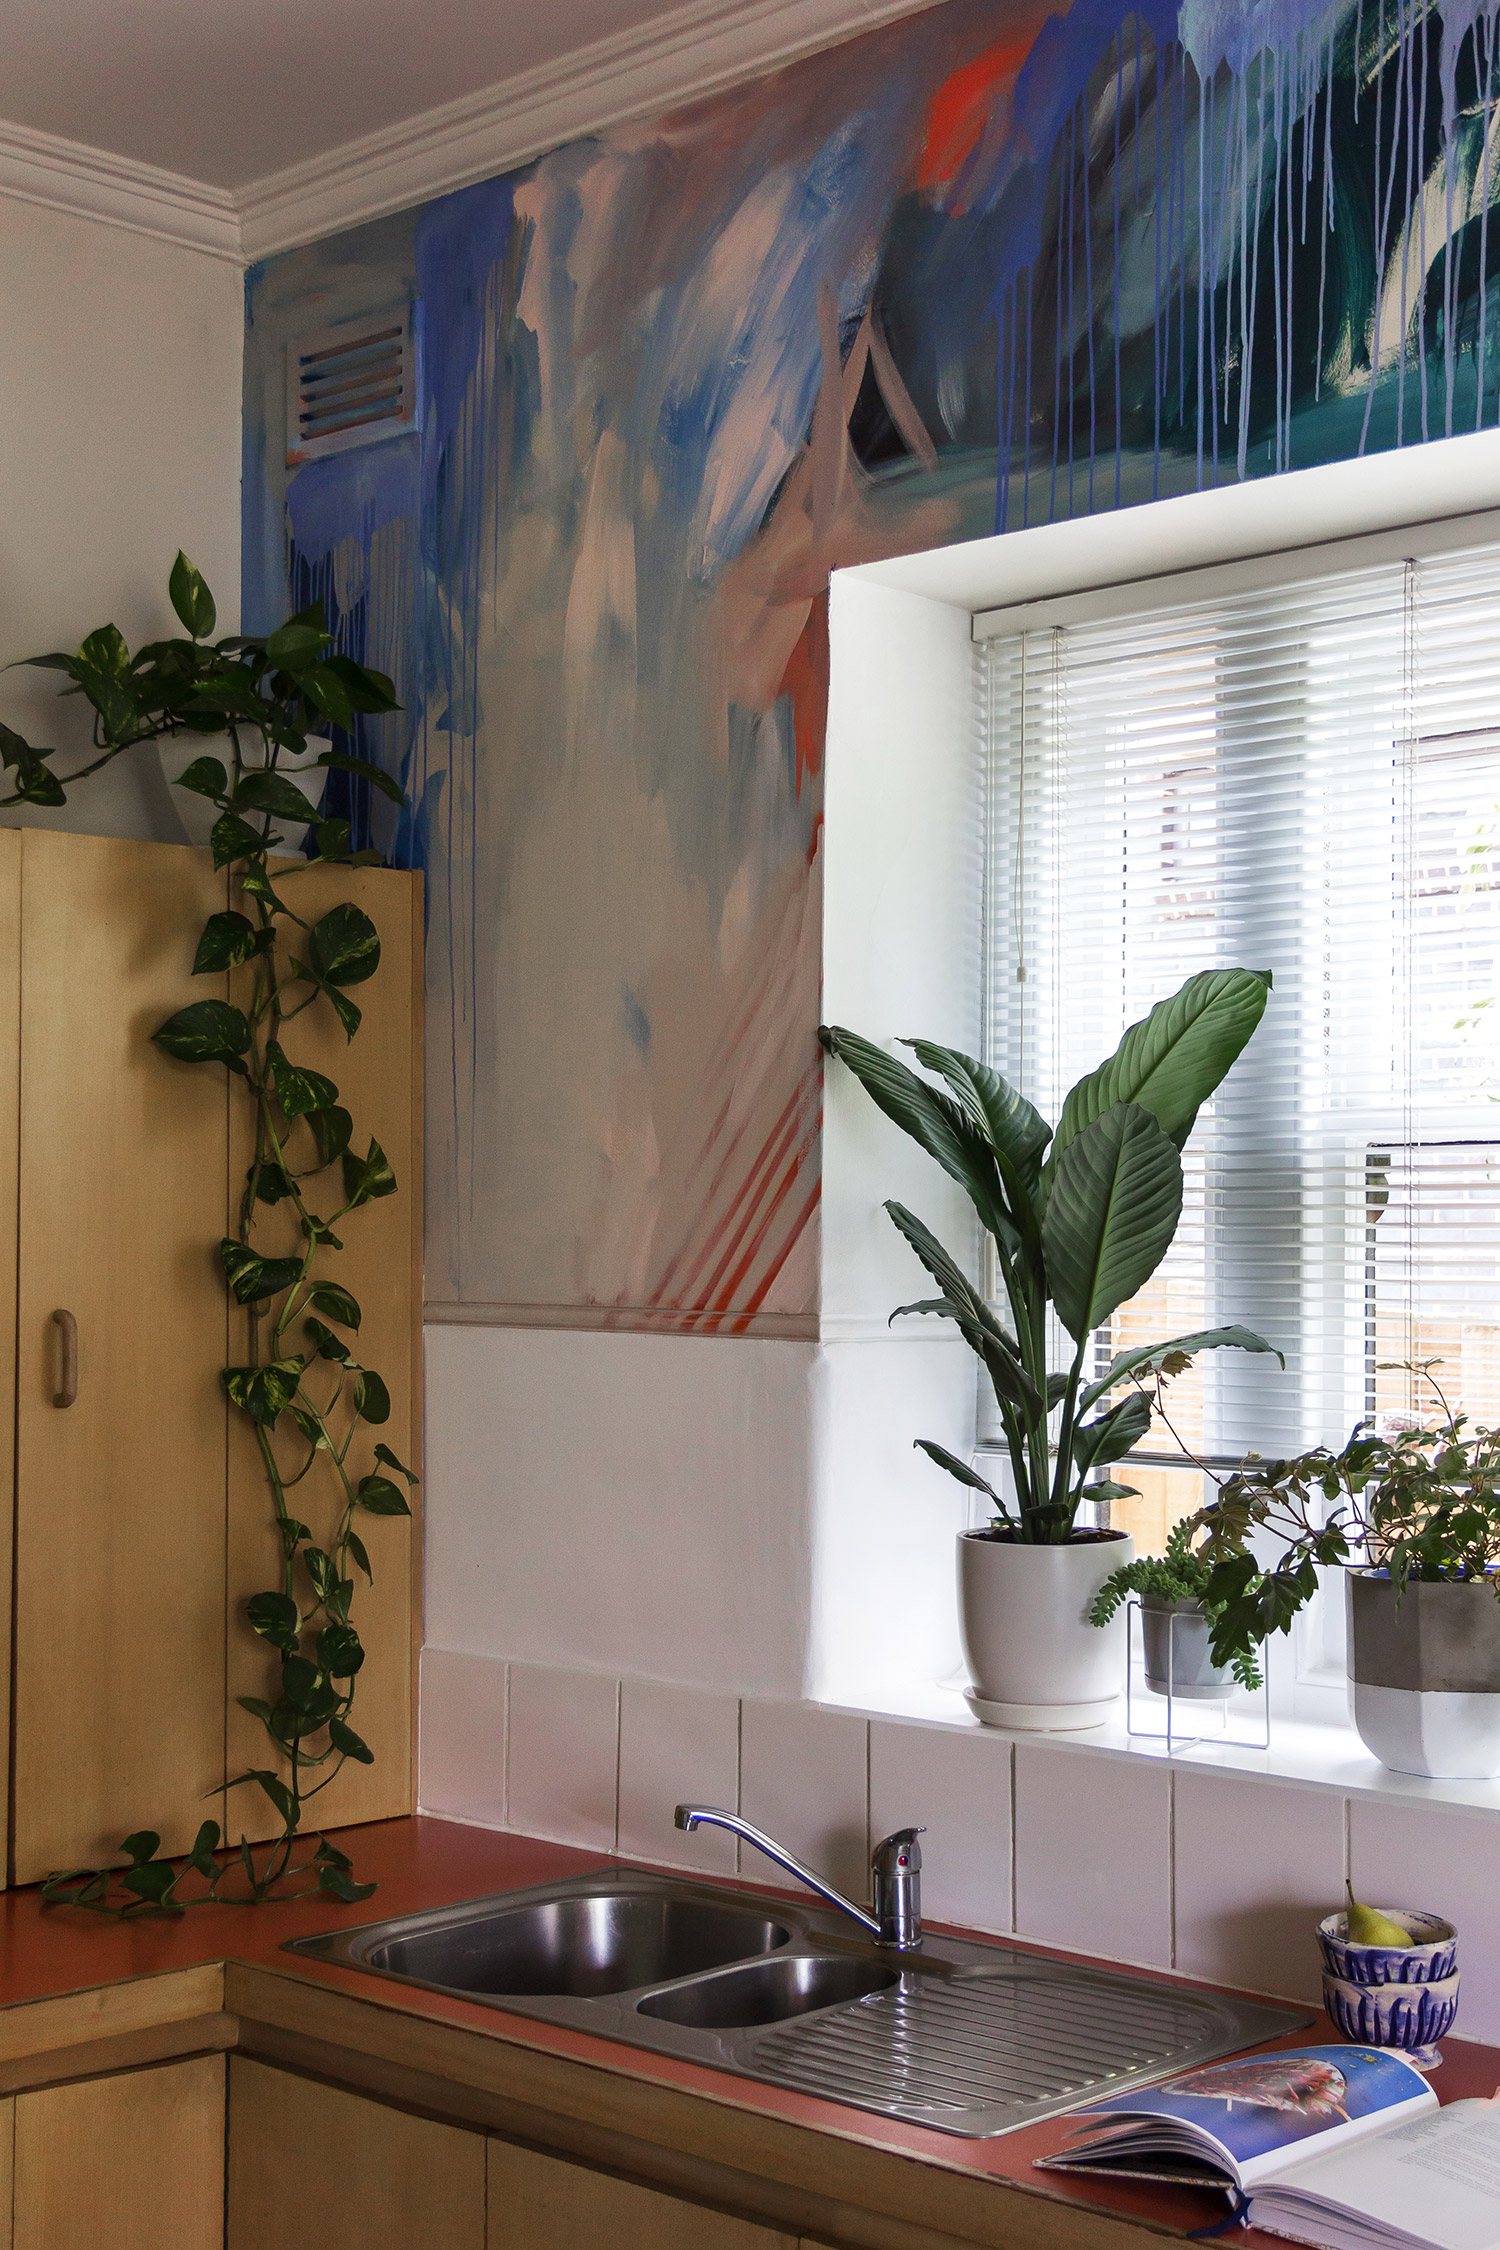 Modern, clean styled kitchen featuring gorgeous abstract mural, contemporary and fresh feel with green plants on windowsill and hanging ivy plant.